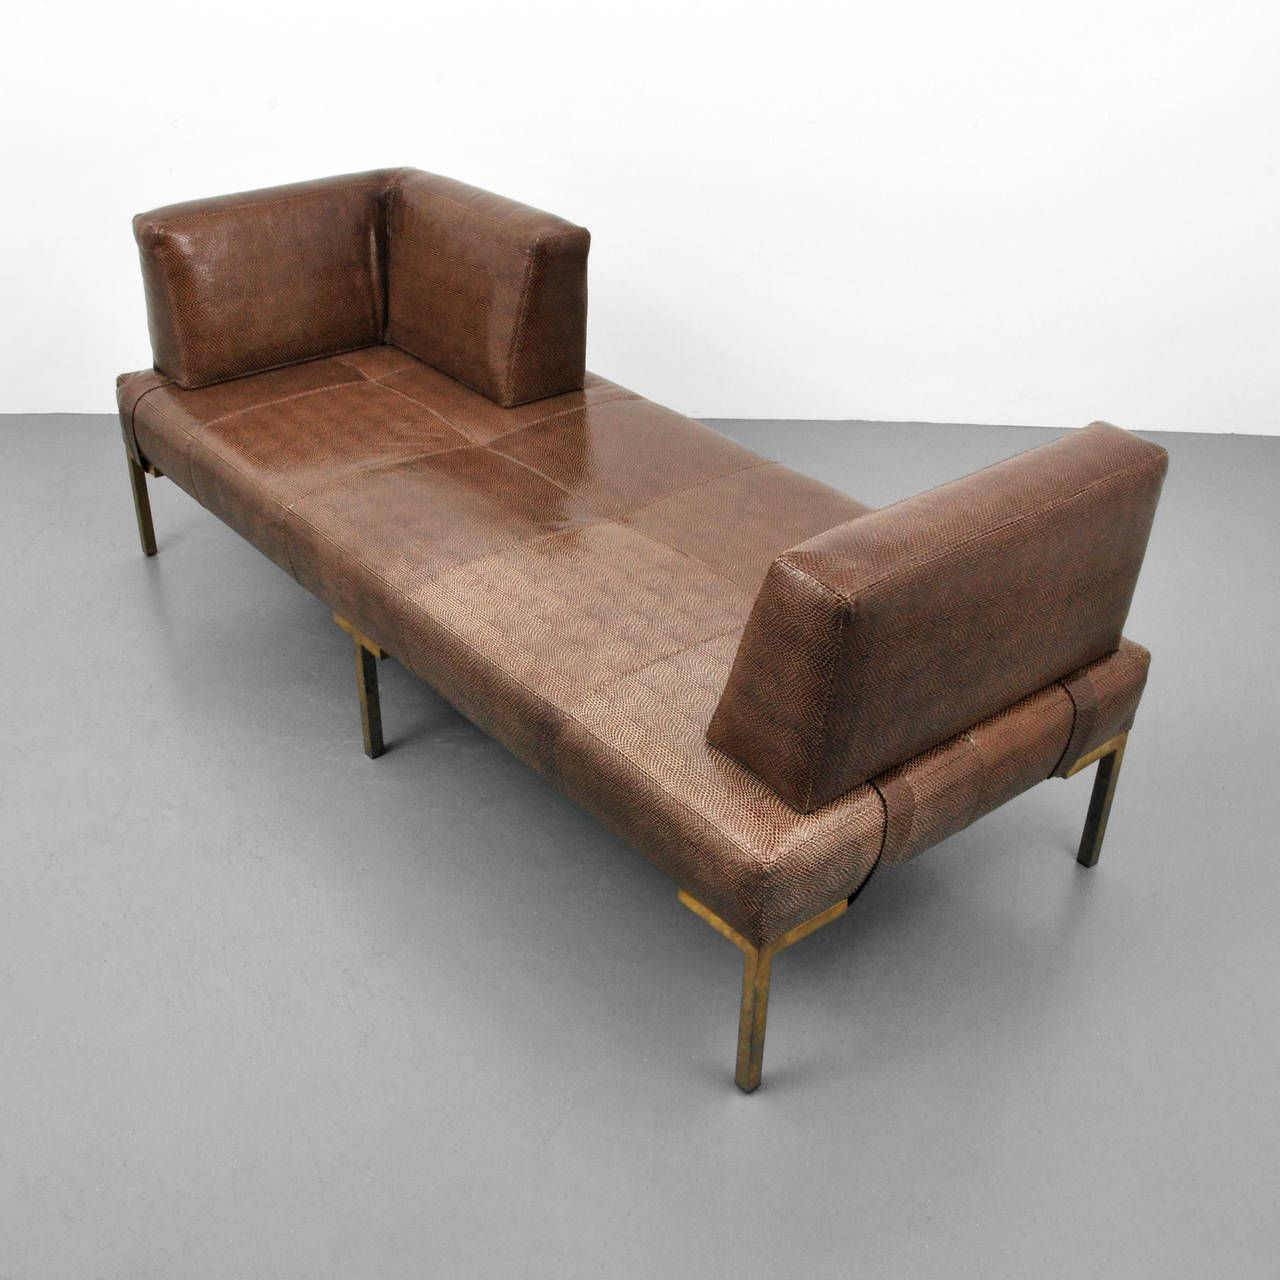 Uncategorized Unique Chaise Lounge luigi gentile leather daybeds or chaise lounges two available available